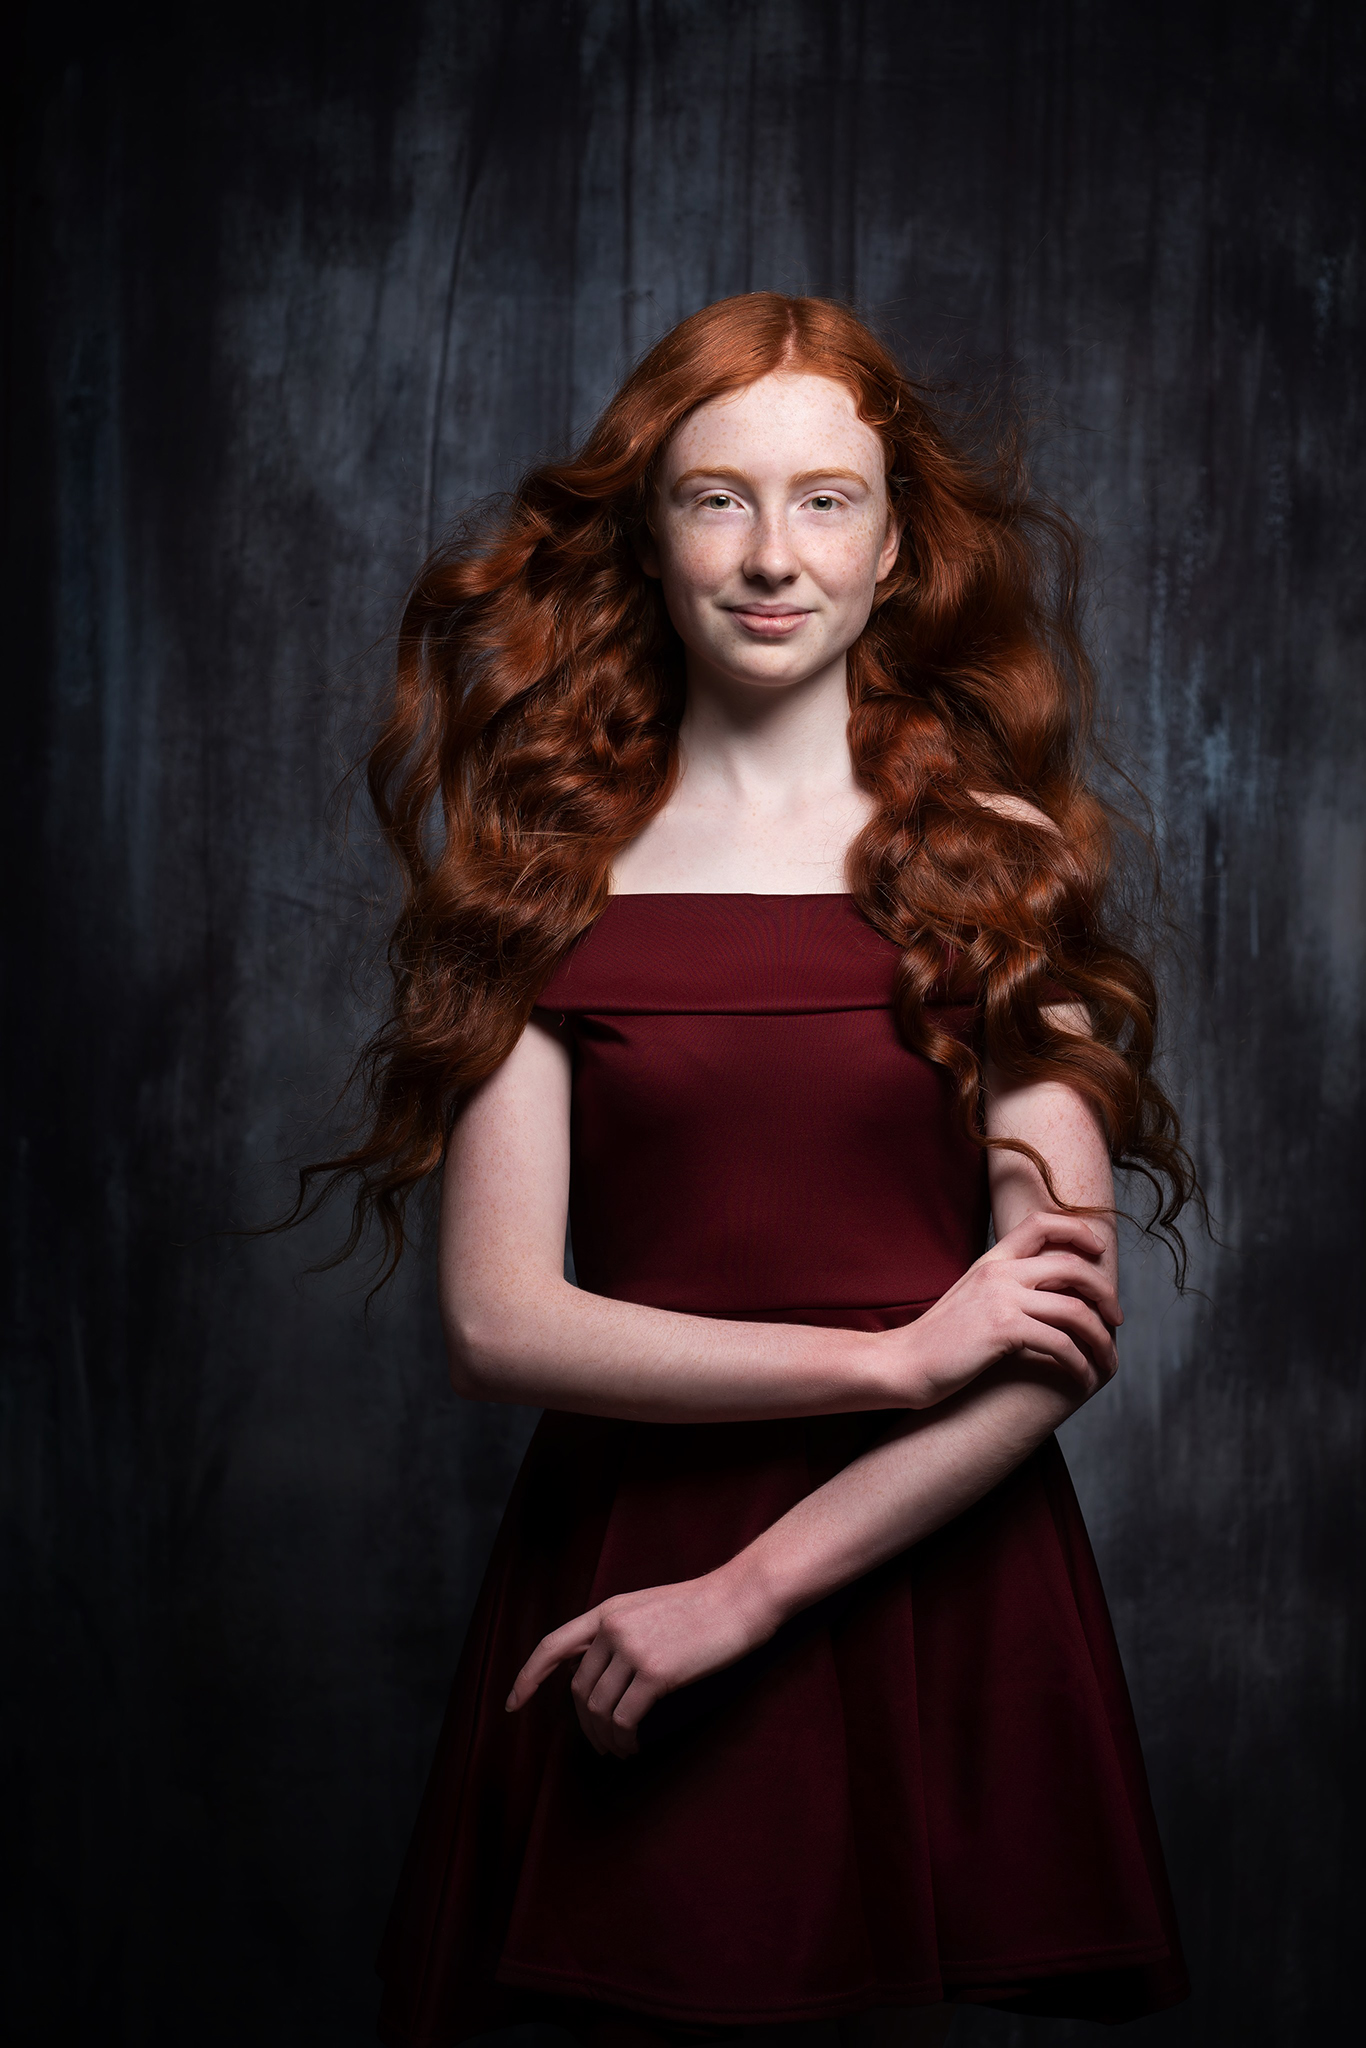 portrait of red head with editing tips for photographers